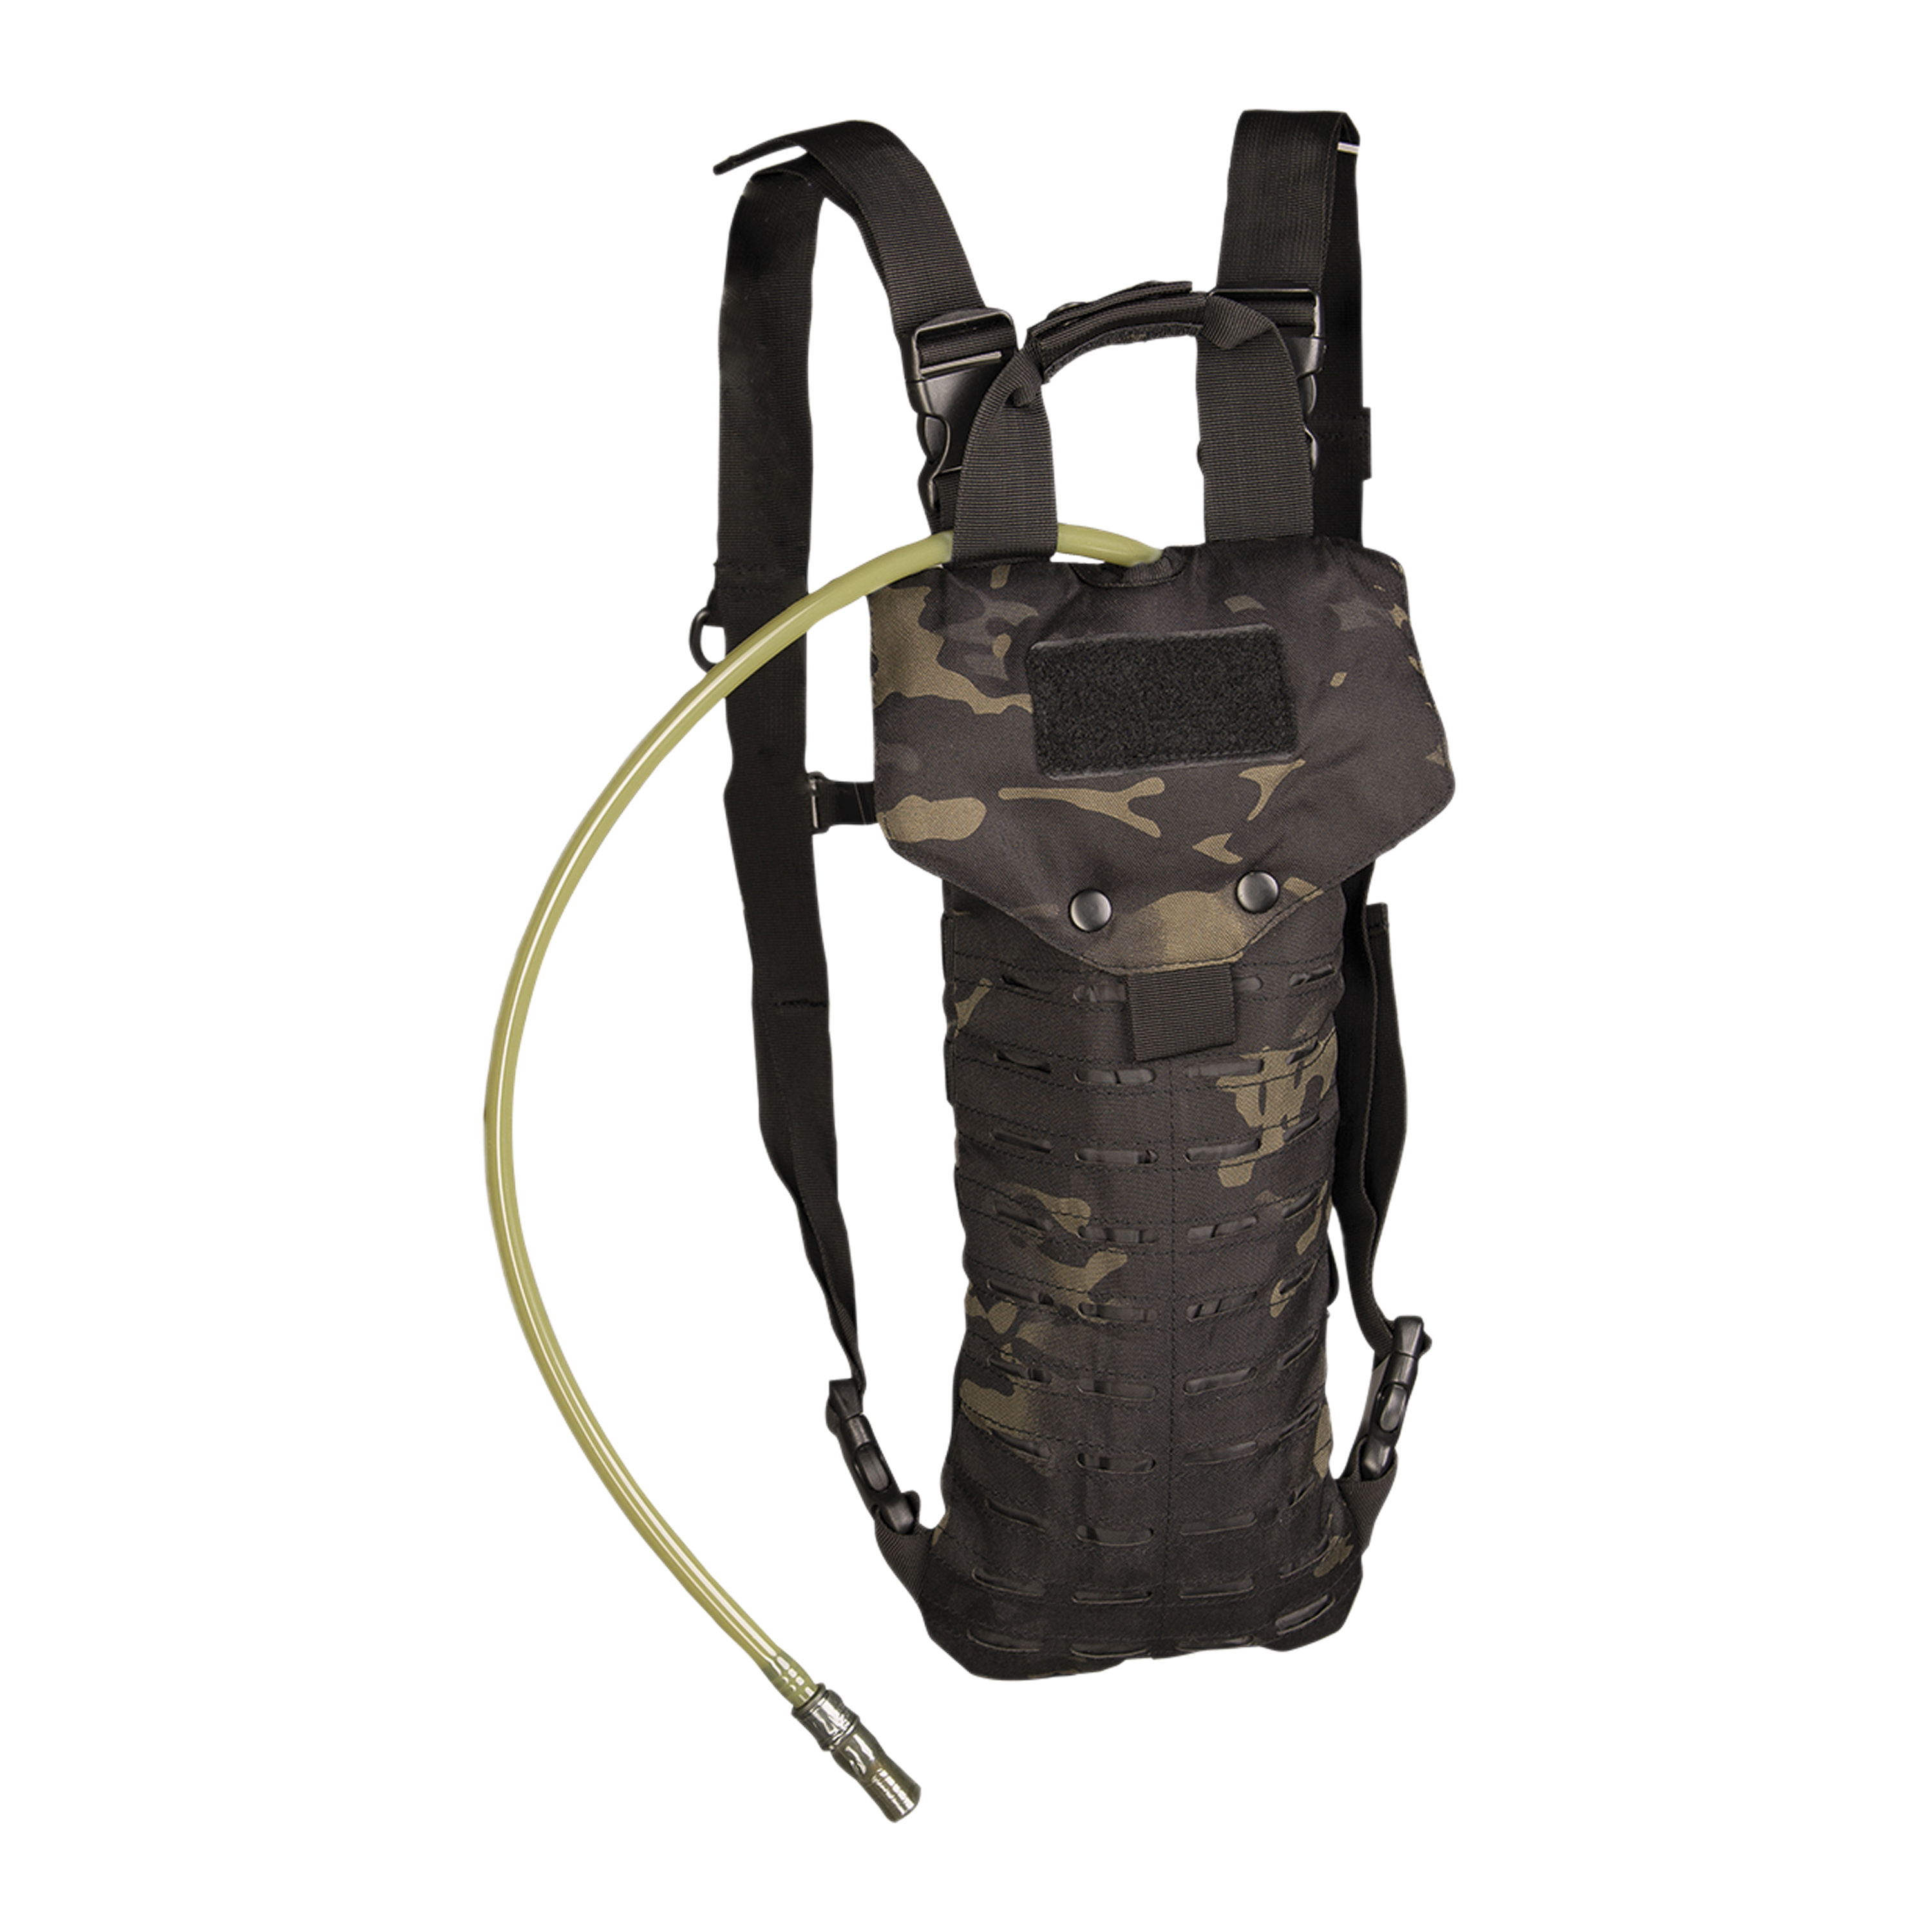 Rucksack Hydration Pack Laser Cut 2.5 L multitarn black